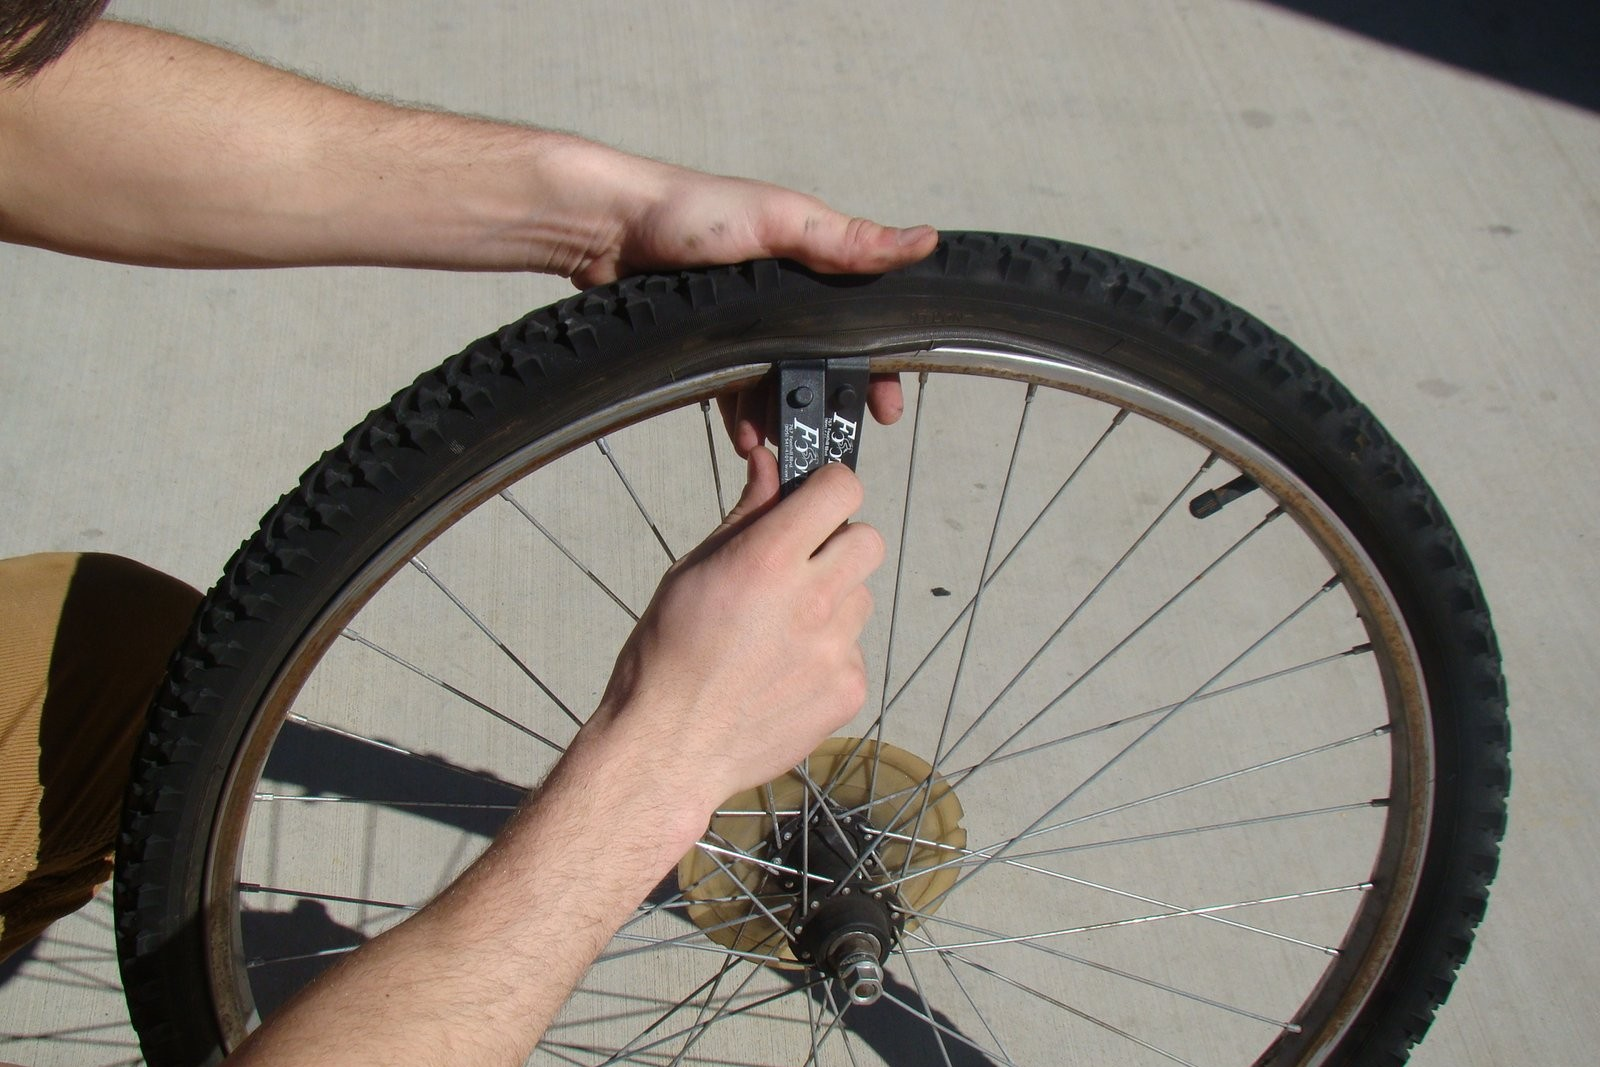 Bike tire being removed from a rim.